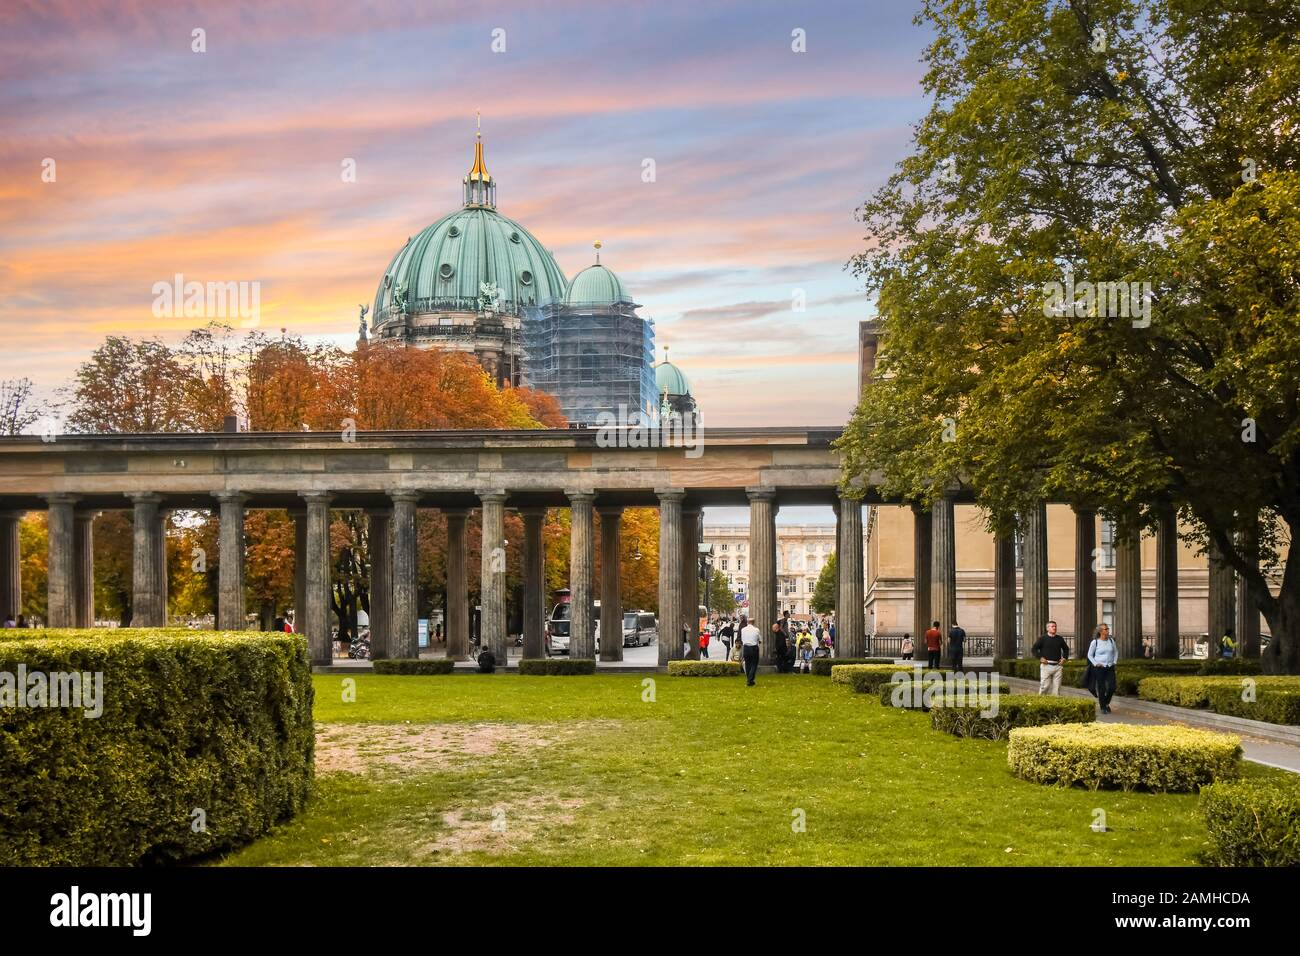 Tourists and local Germans enjoy an autumn day under a colorful sky on Museum Island with the  Berlin Cathedral in view as leaves turn orange. Stock Photo